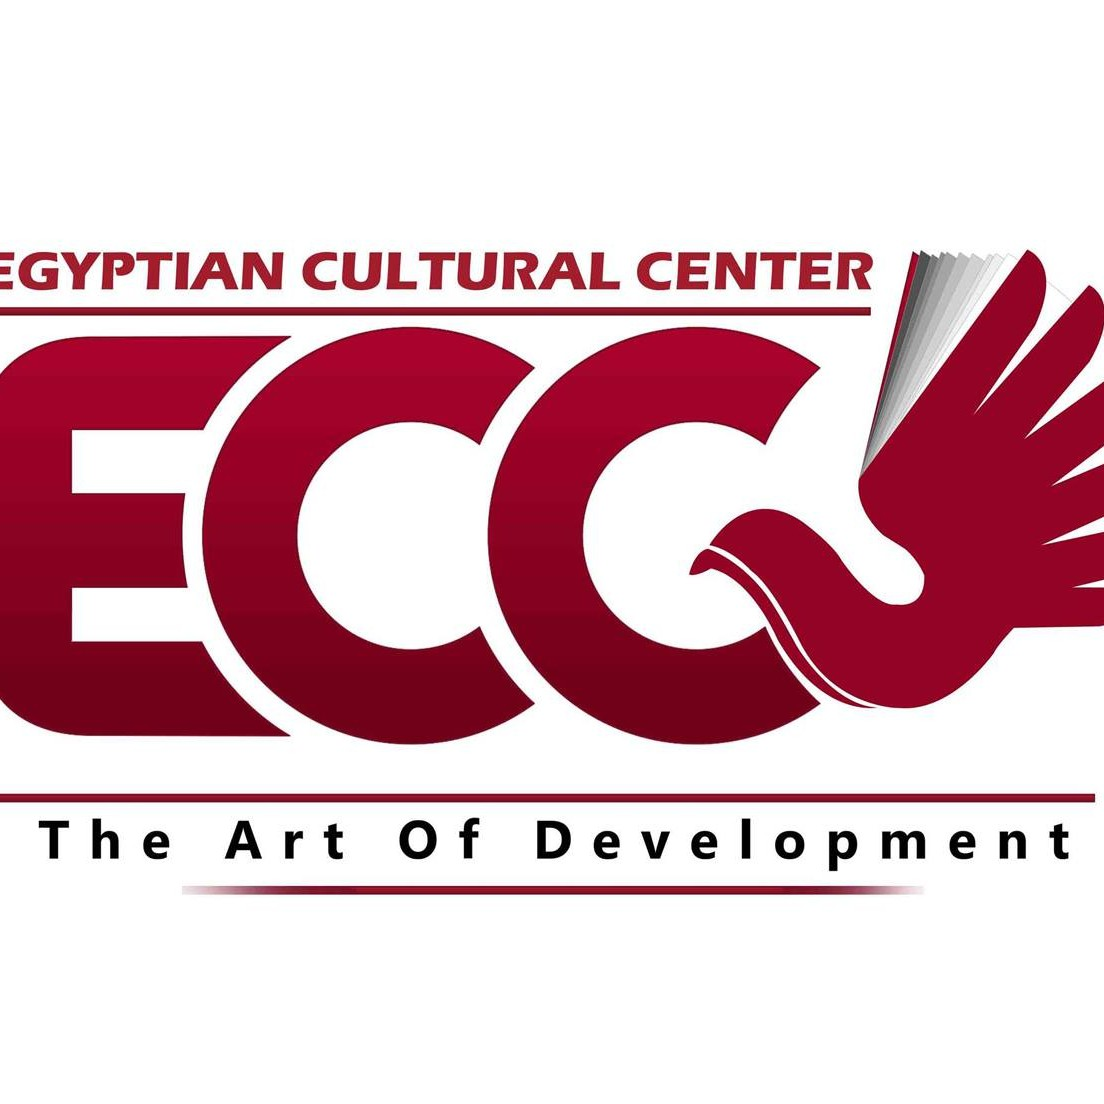 Egyptian Cultural Center